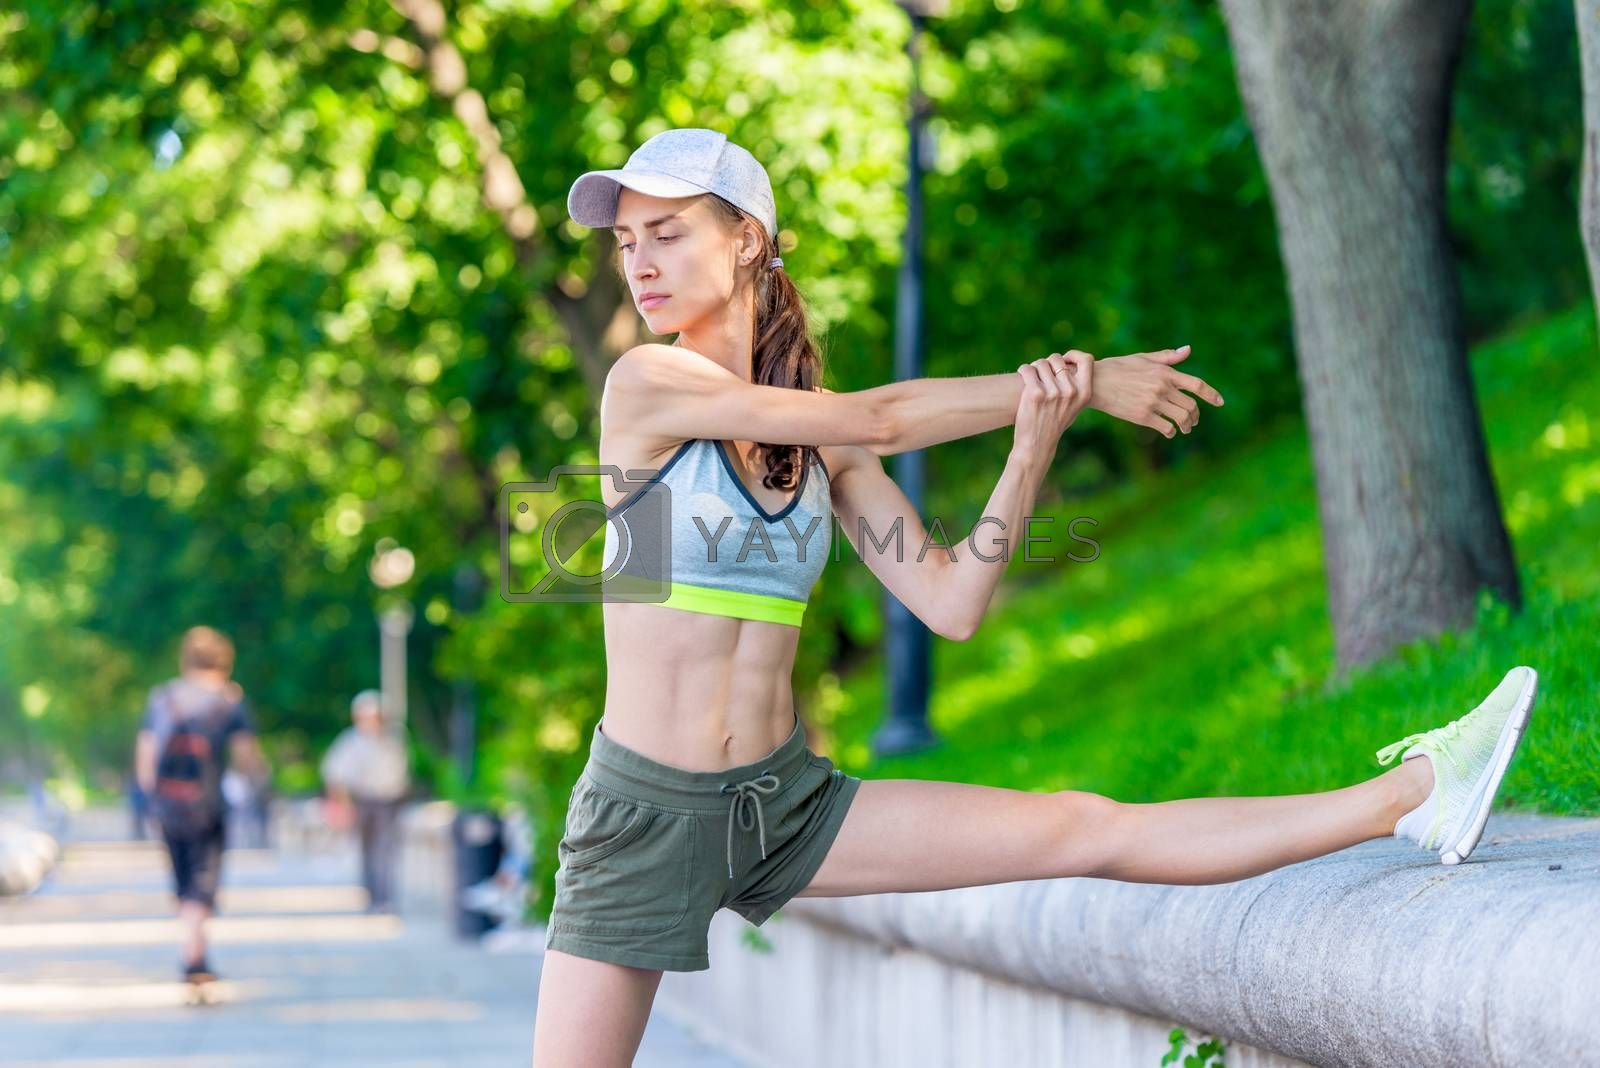 slender woman athlete warming up before jogging in a city park,  by Labunskiy K.